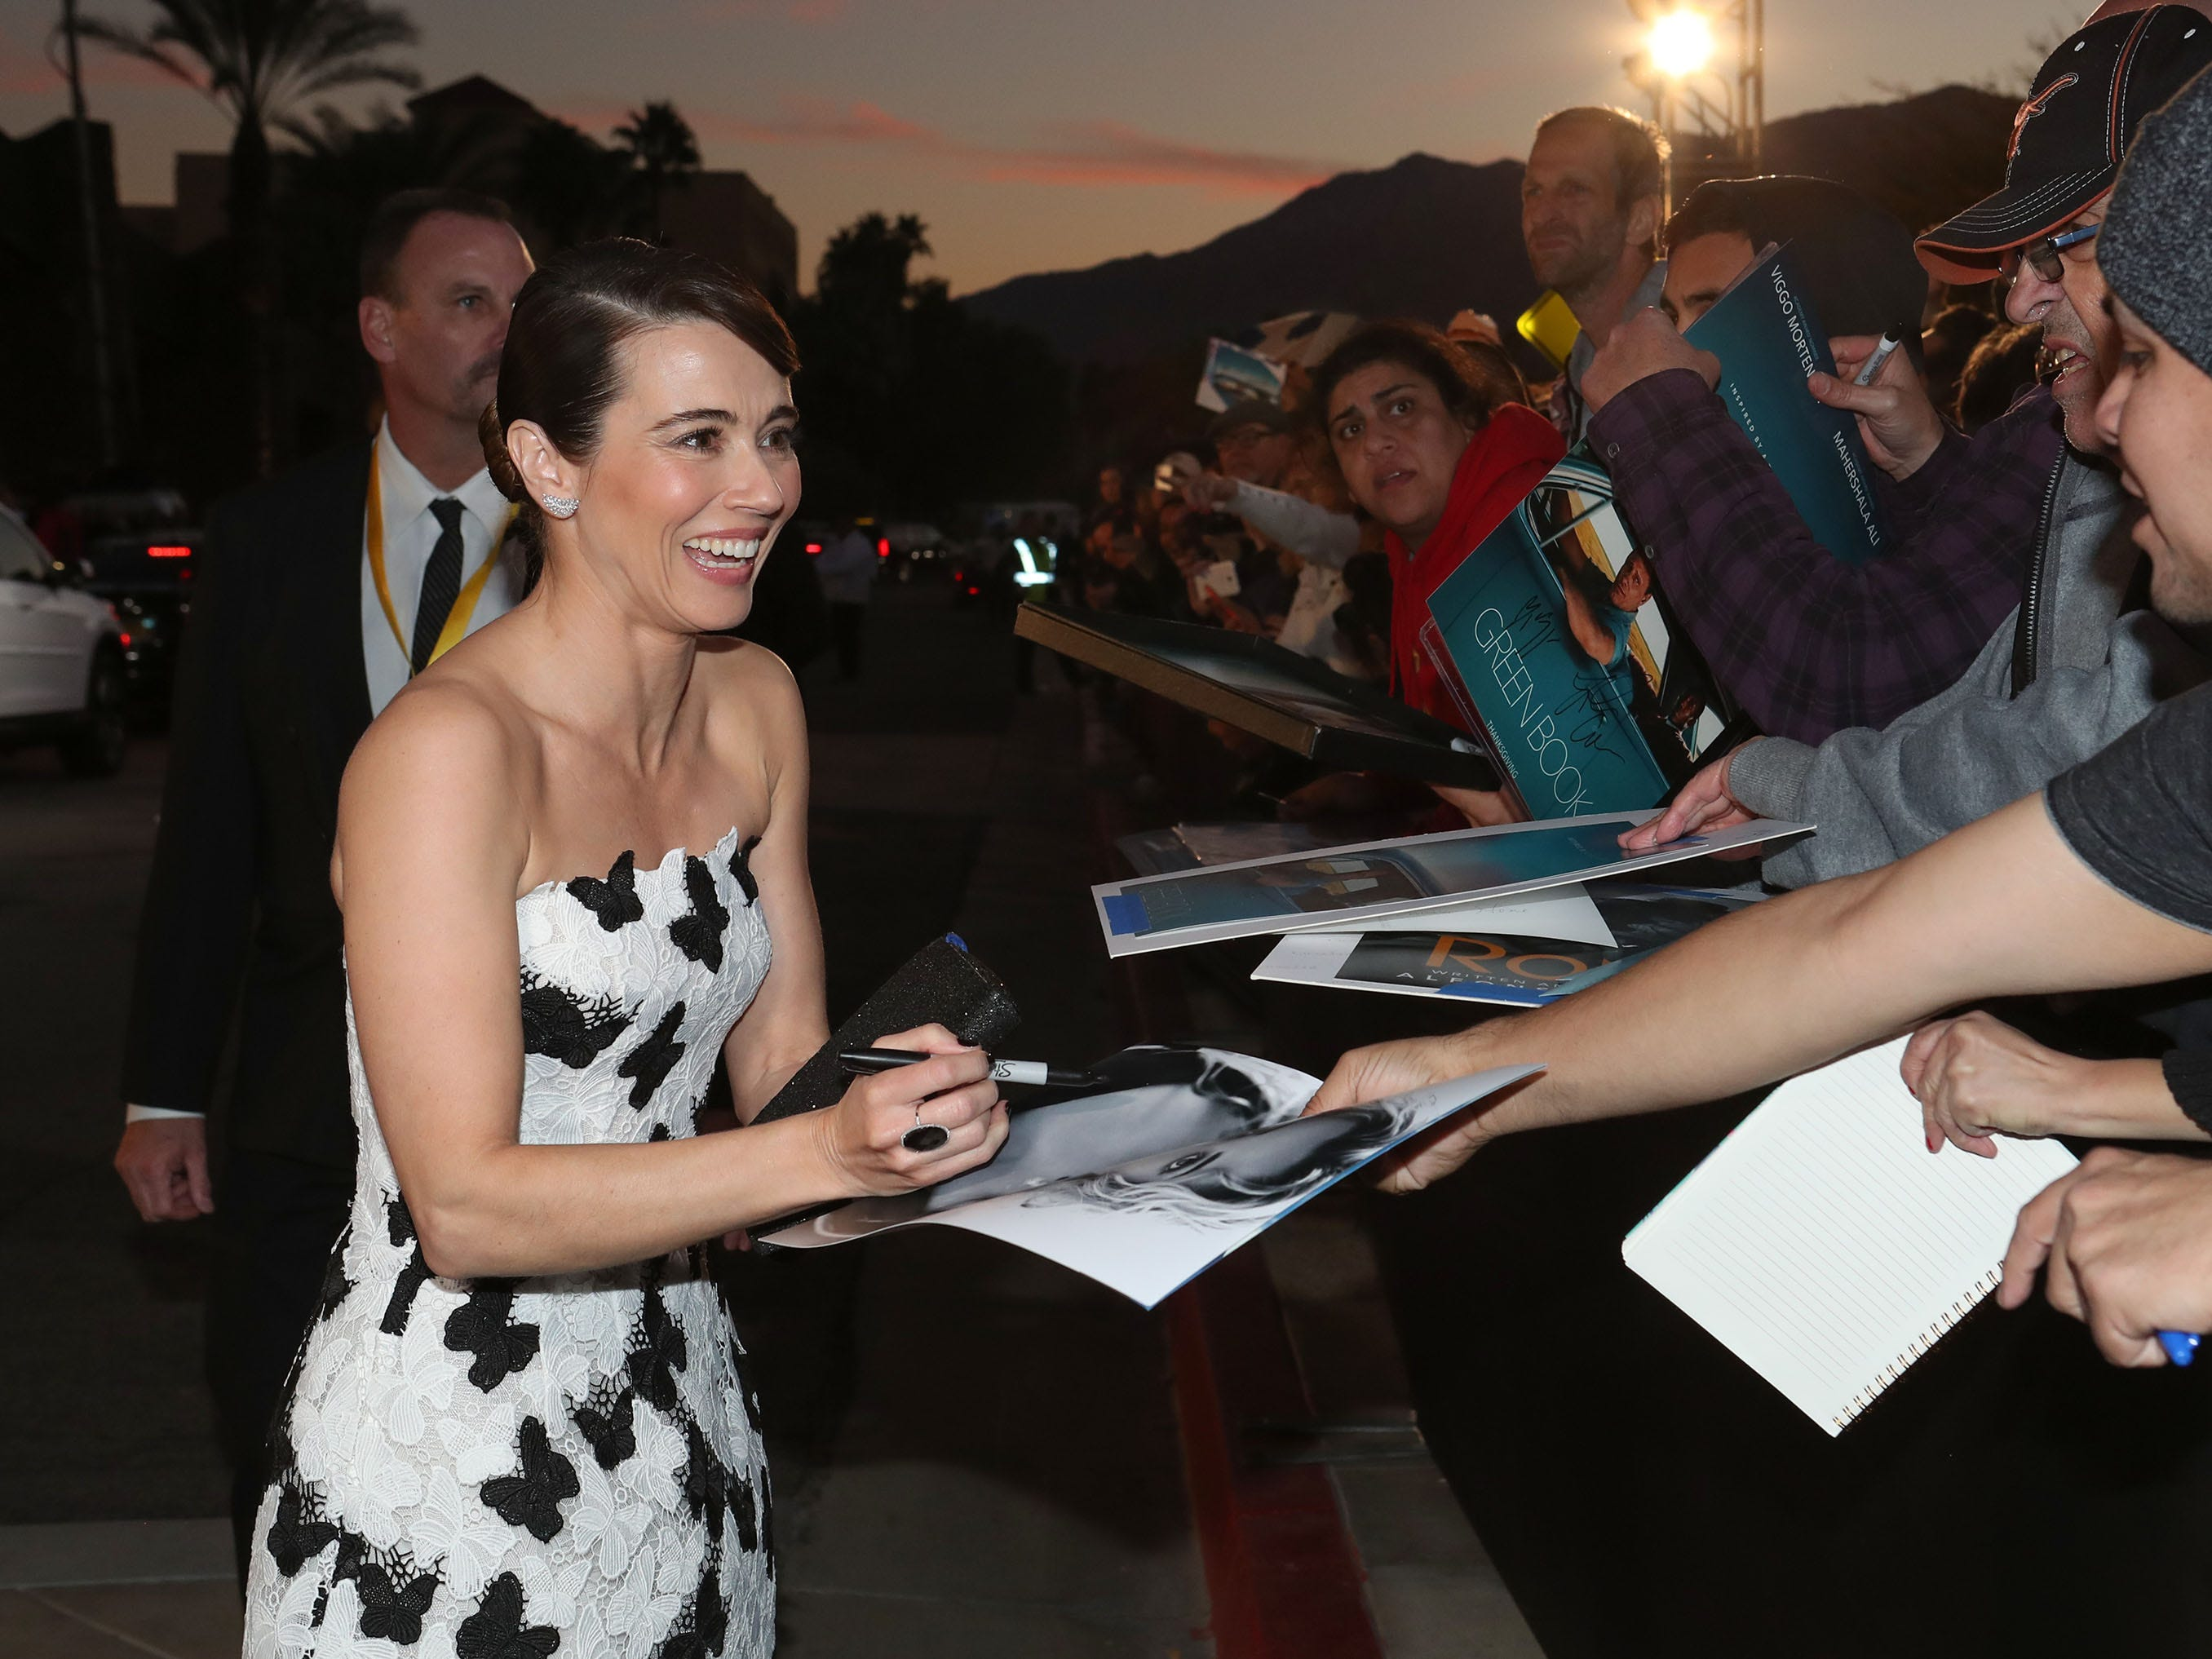 Linda Cardellini signs autographs for fans at the Palm Springs International Film Festival Awards Gala, January 3, 2019.